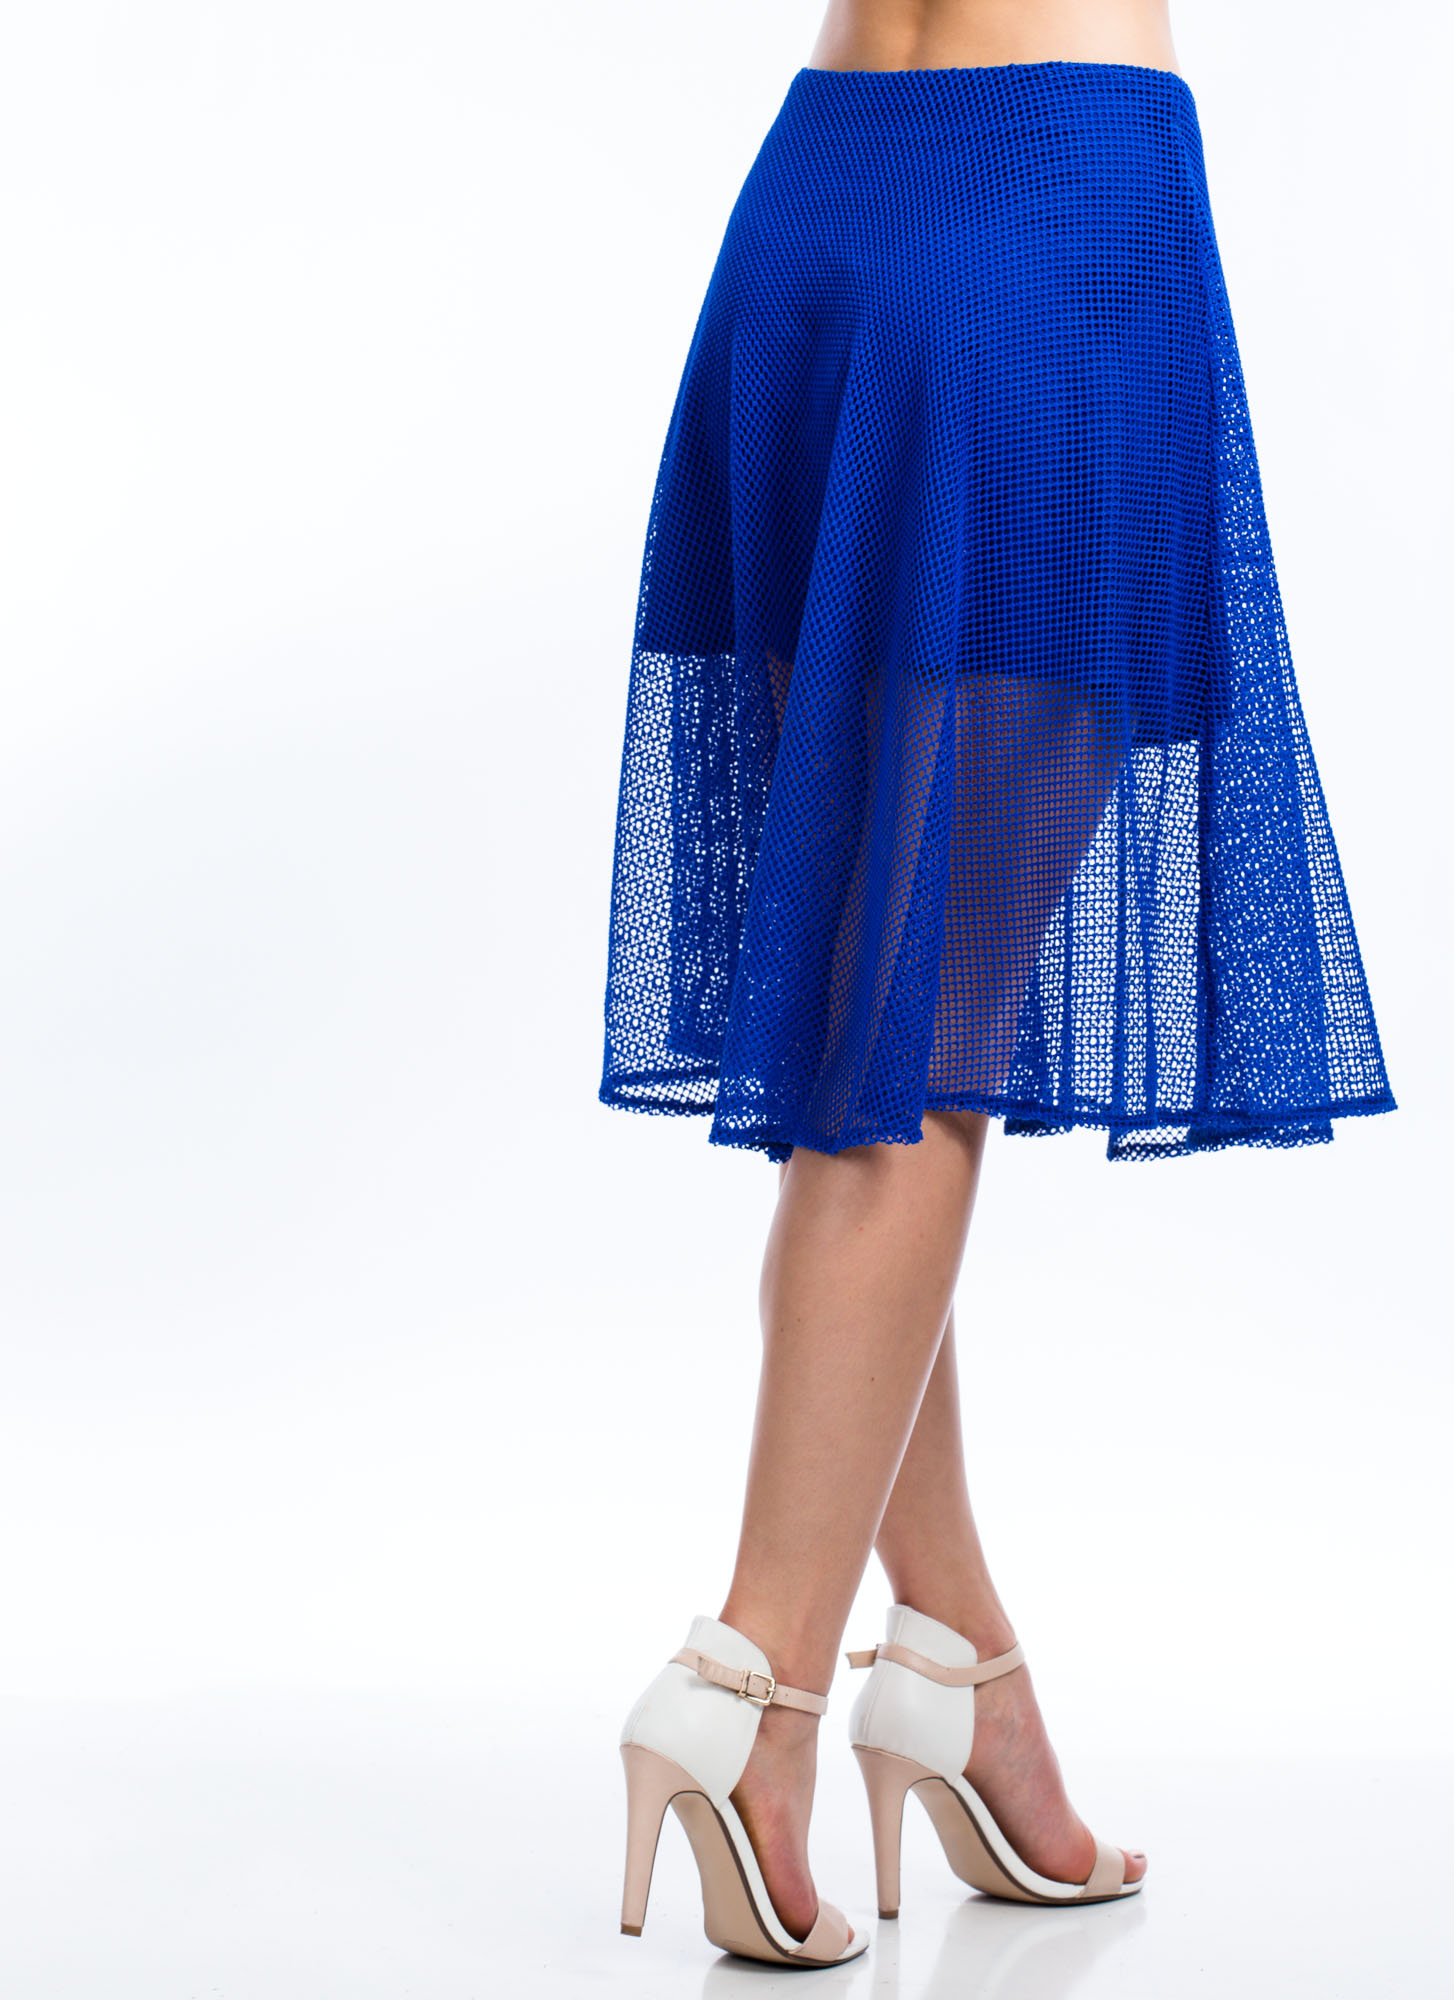 Net To Pay A-Line Skirt ROYAL